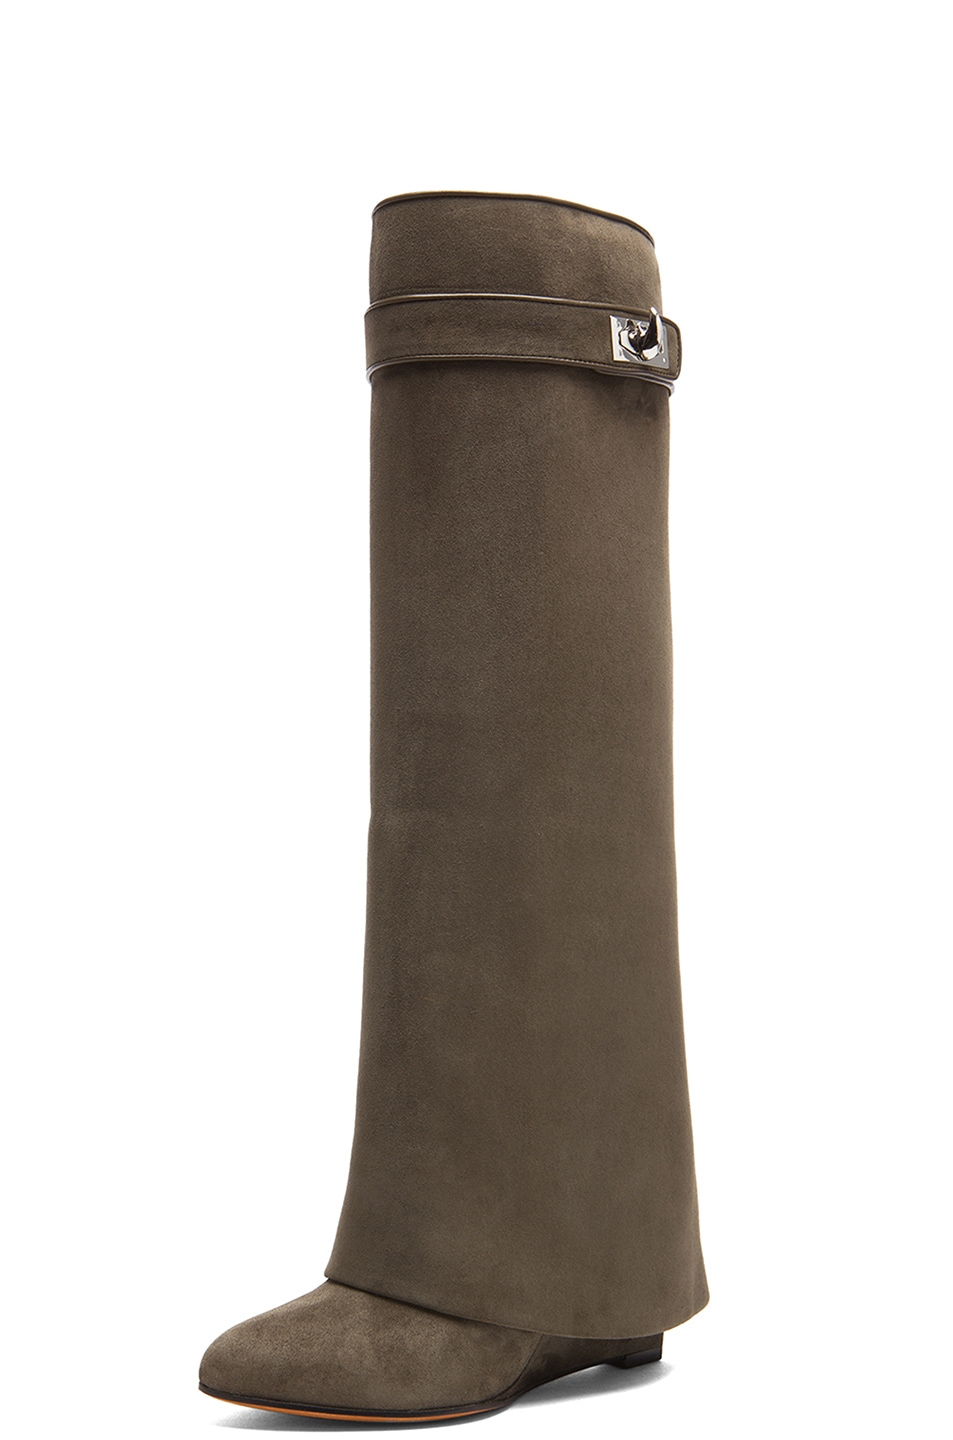 Givenchy Shark Lock Tall Suede Pant Boots In Khaki Fwrd